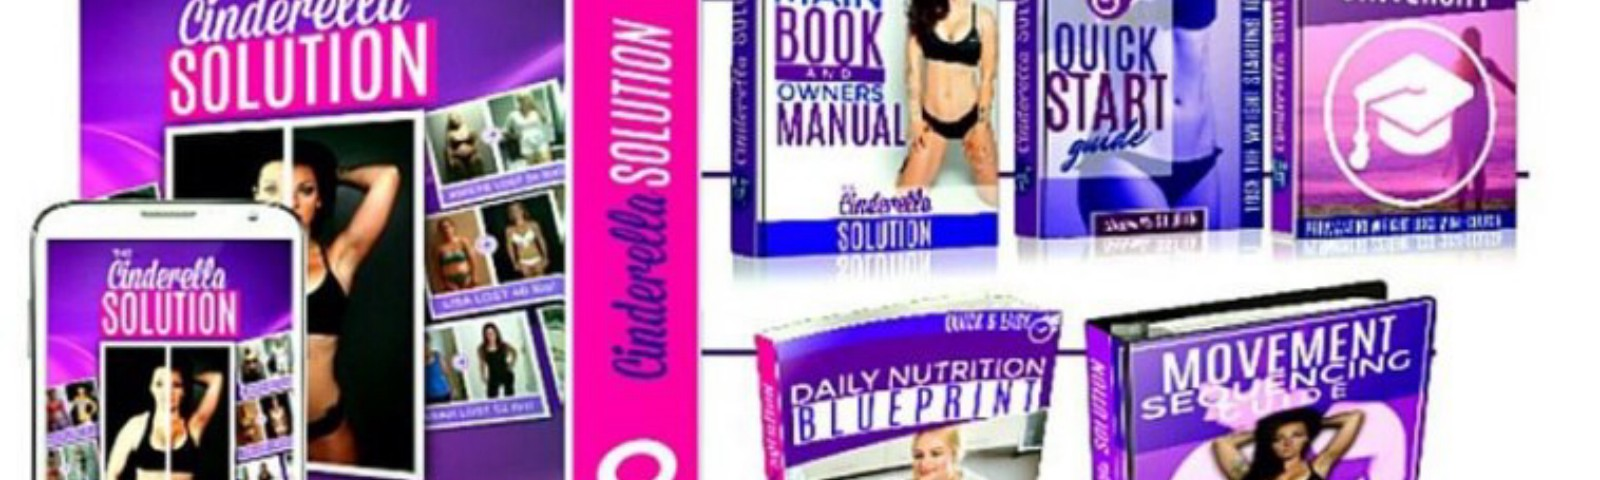 Cheap Cinderella Solution Diet Buy Outright